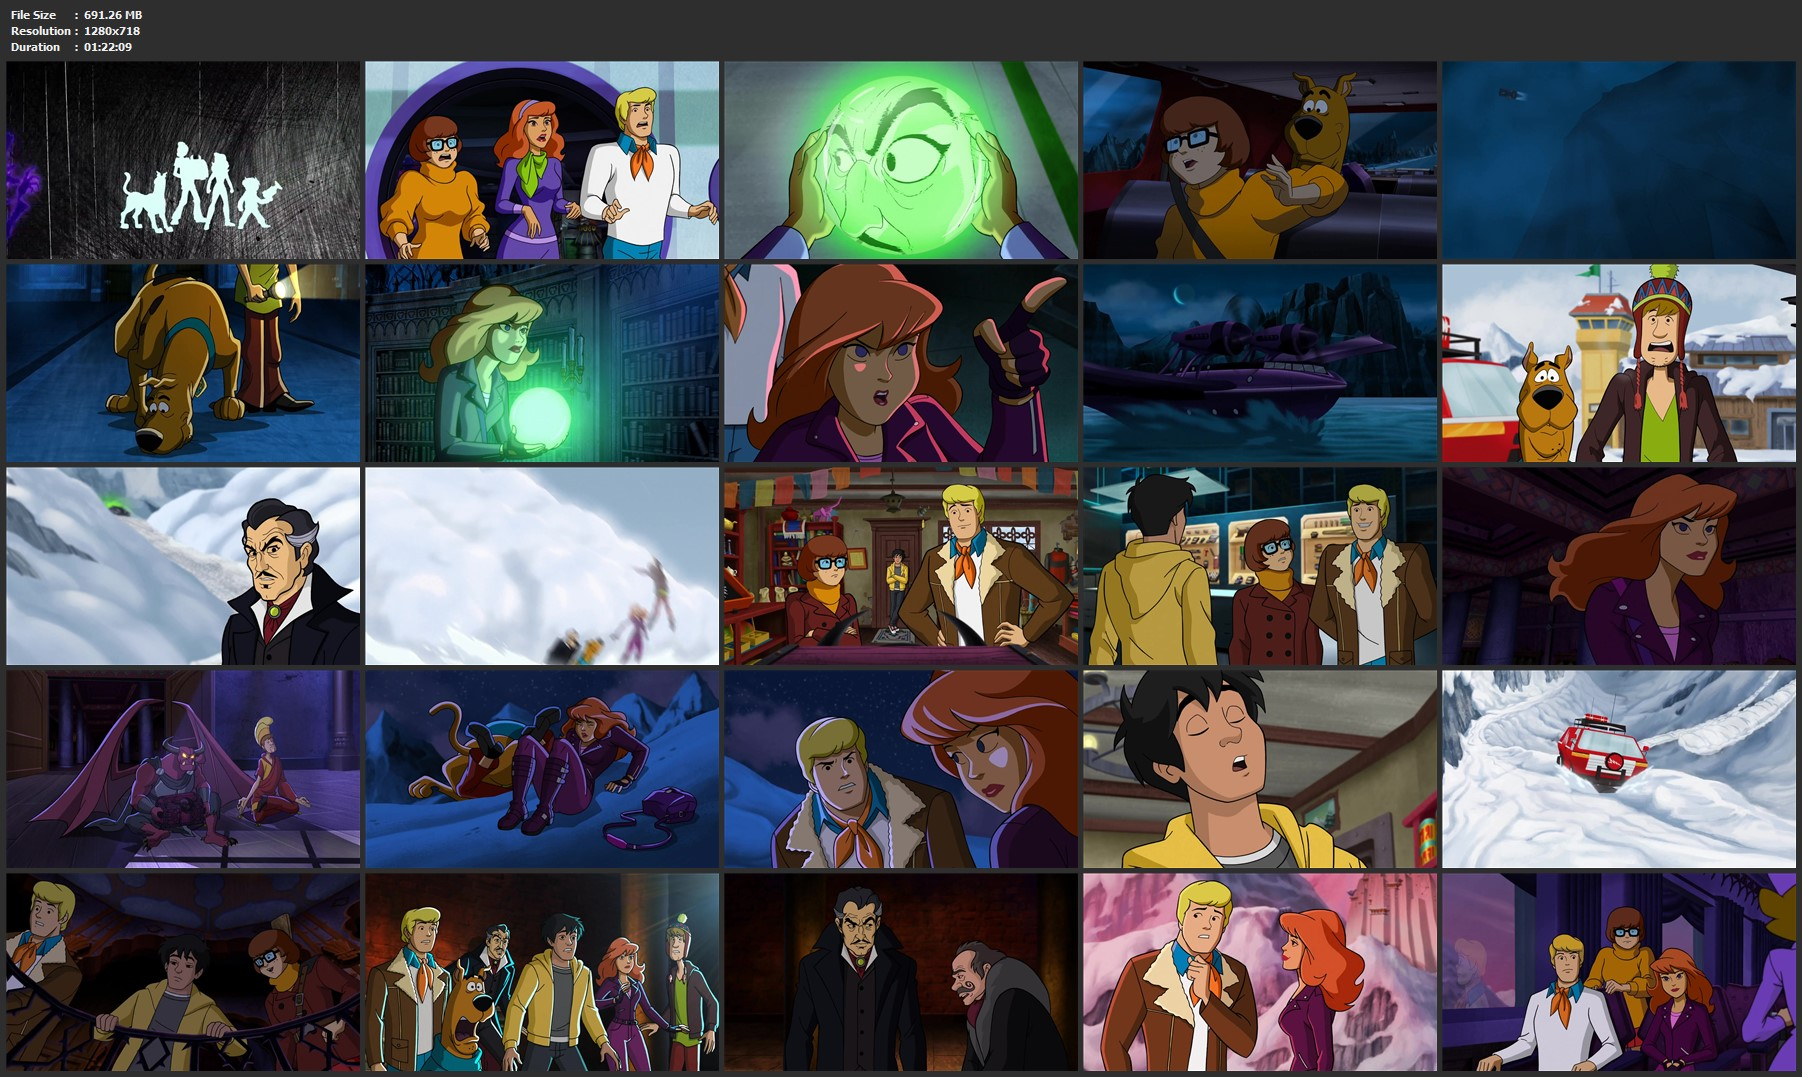 www.download.ir_Scooby-Doo_and_the_Curse_of_the_13th_Ghost_2019_720p_WEB-DL_.mkv